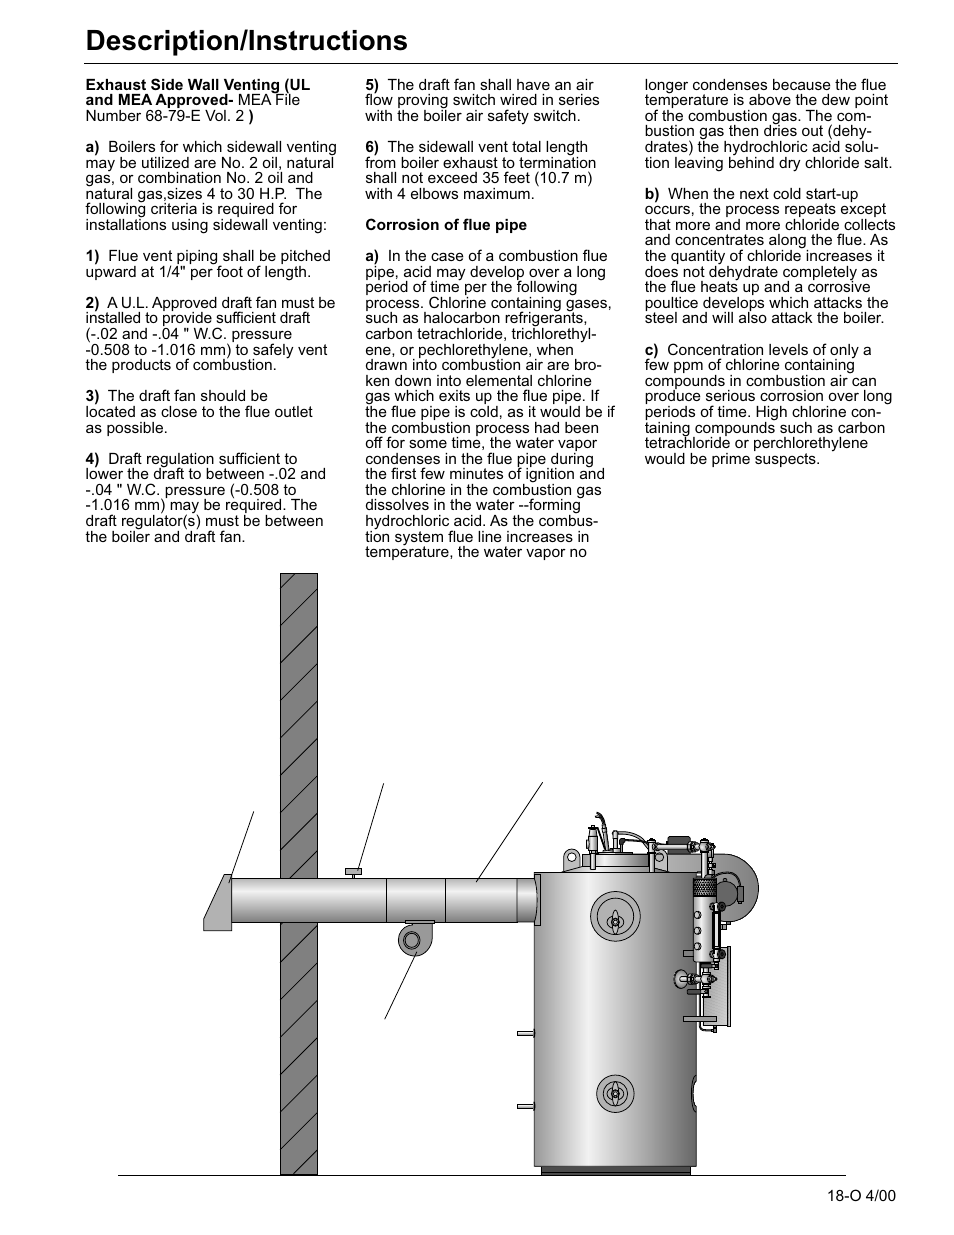 hight resolution of description instructions fulton classic icx or fb f vertical tubeless boilers steam oil fired user manual page 26 76